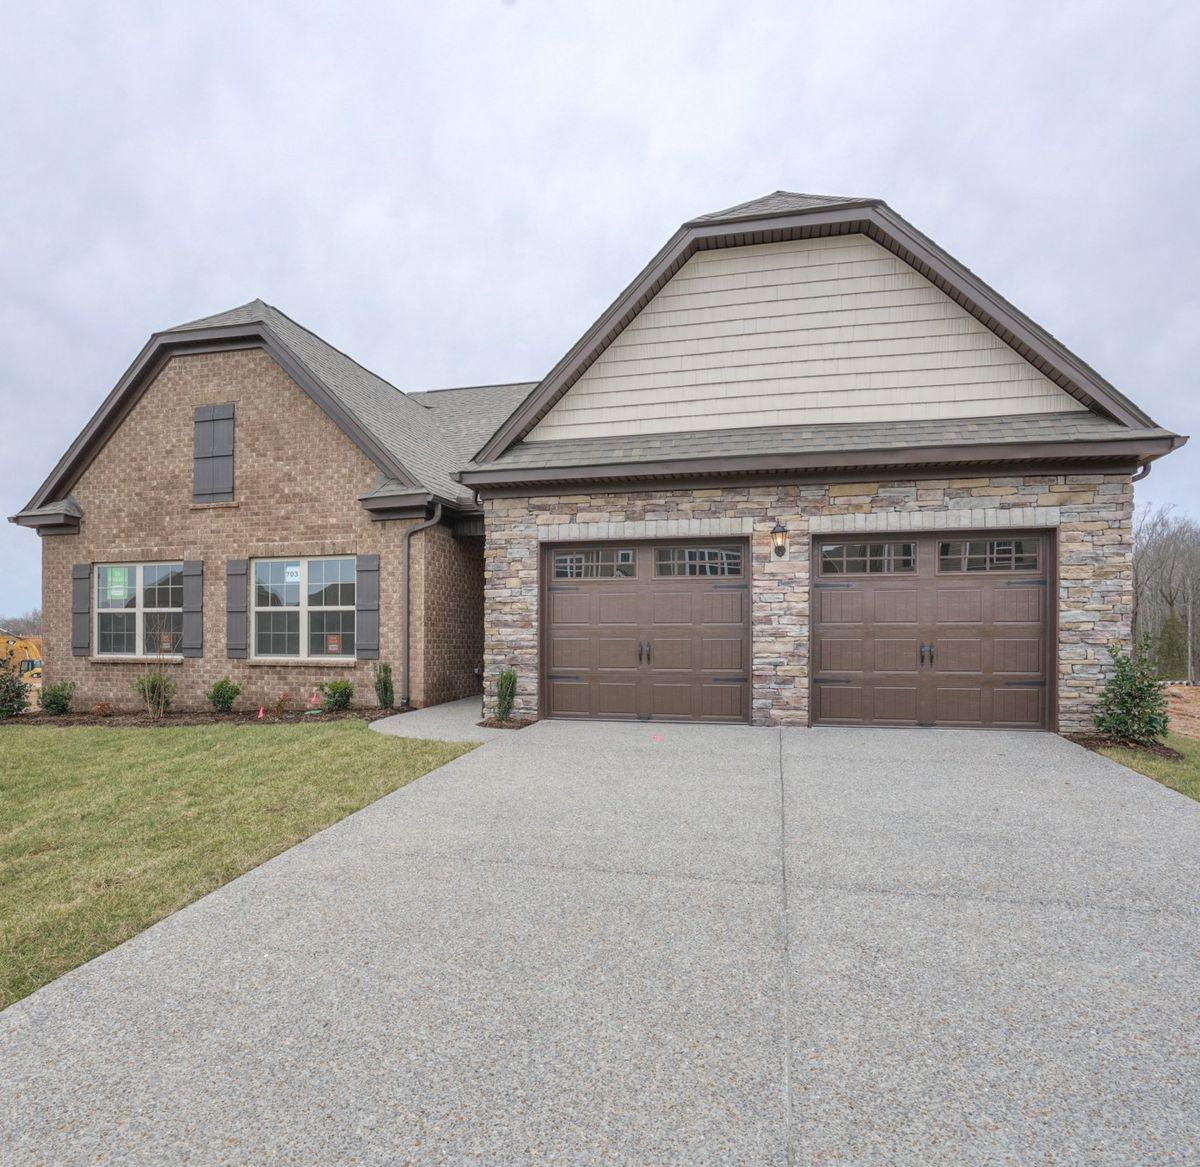 1337 Whispering Oaks Drive, Lot 703